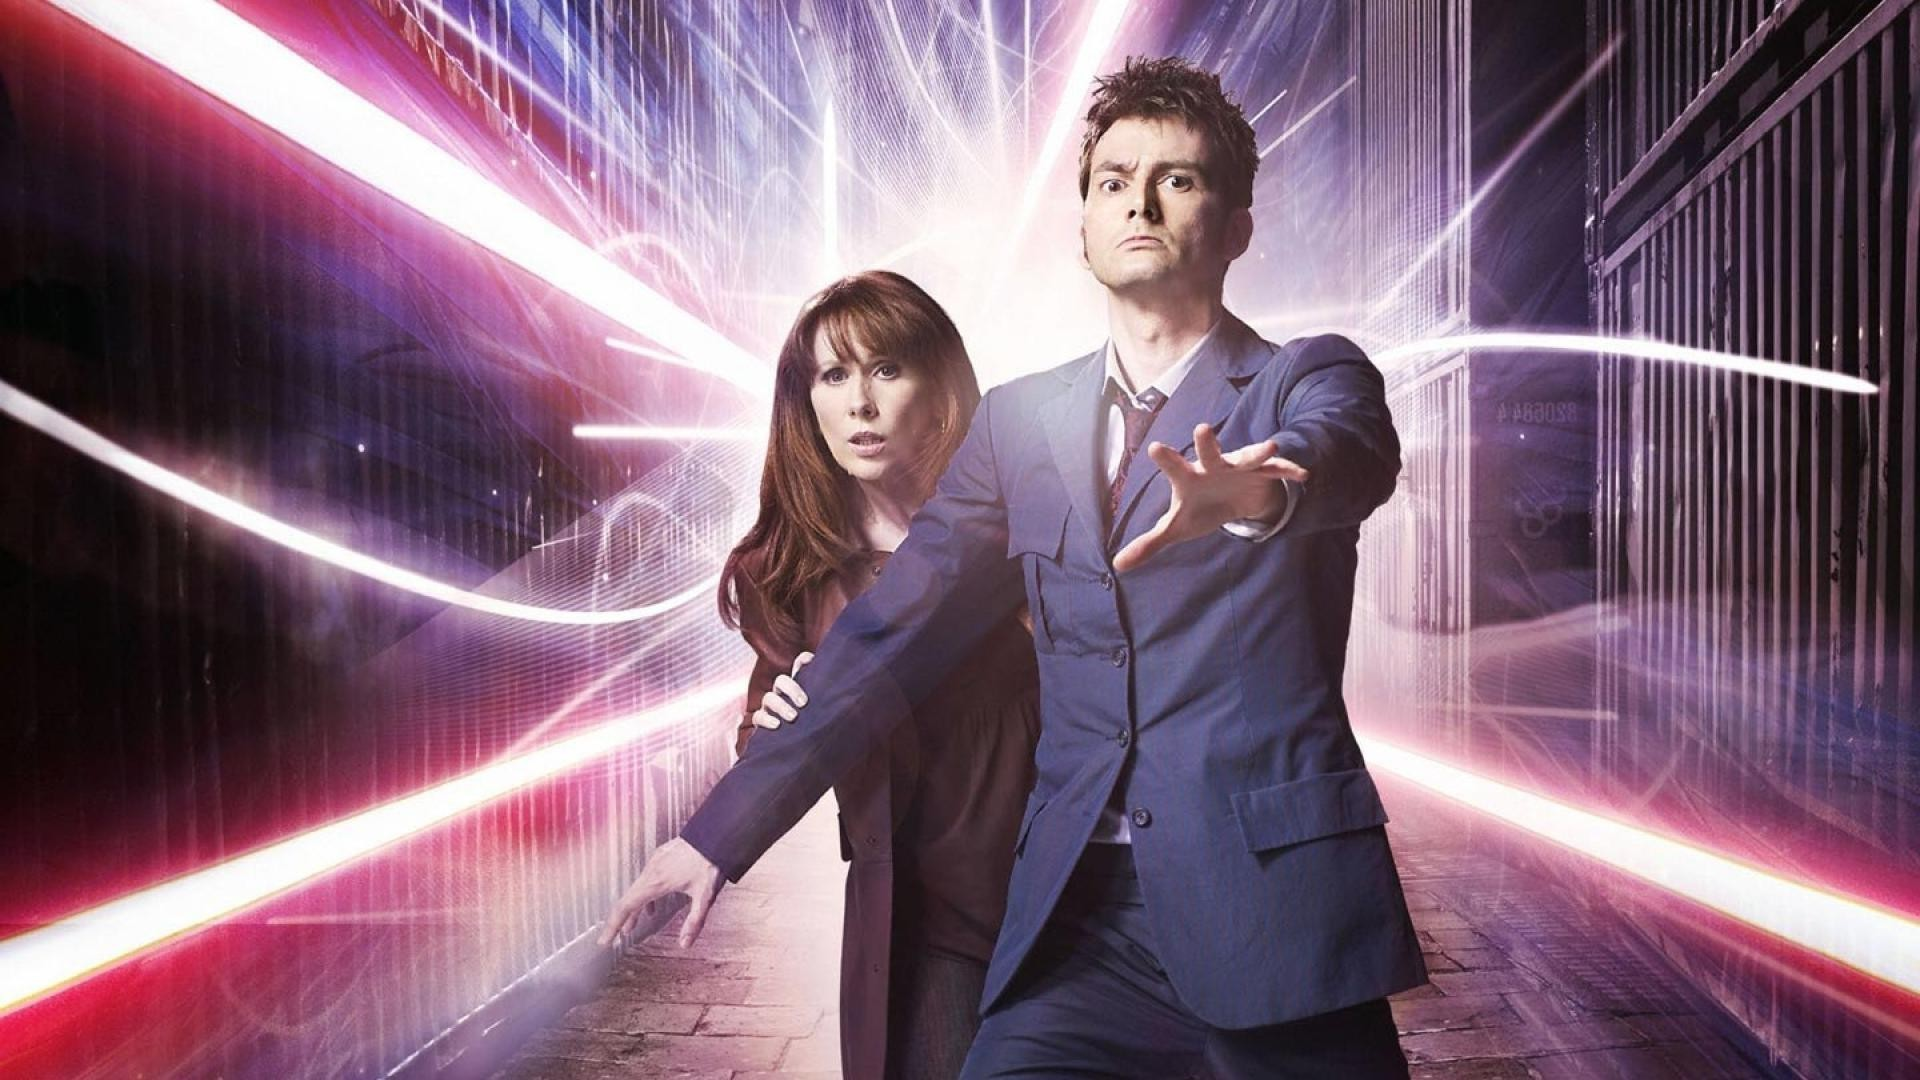 Doctor Who, The Doctor, TARDIS, David Tennant, Tenth Doctor Wallpaper HD